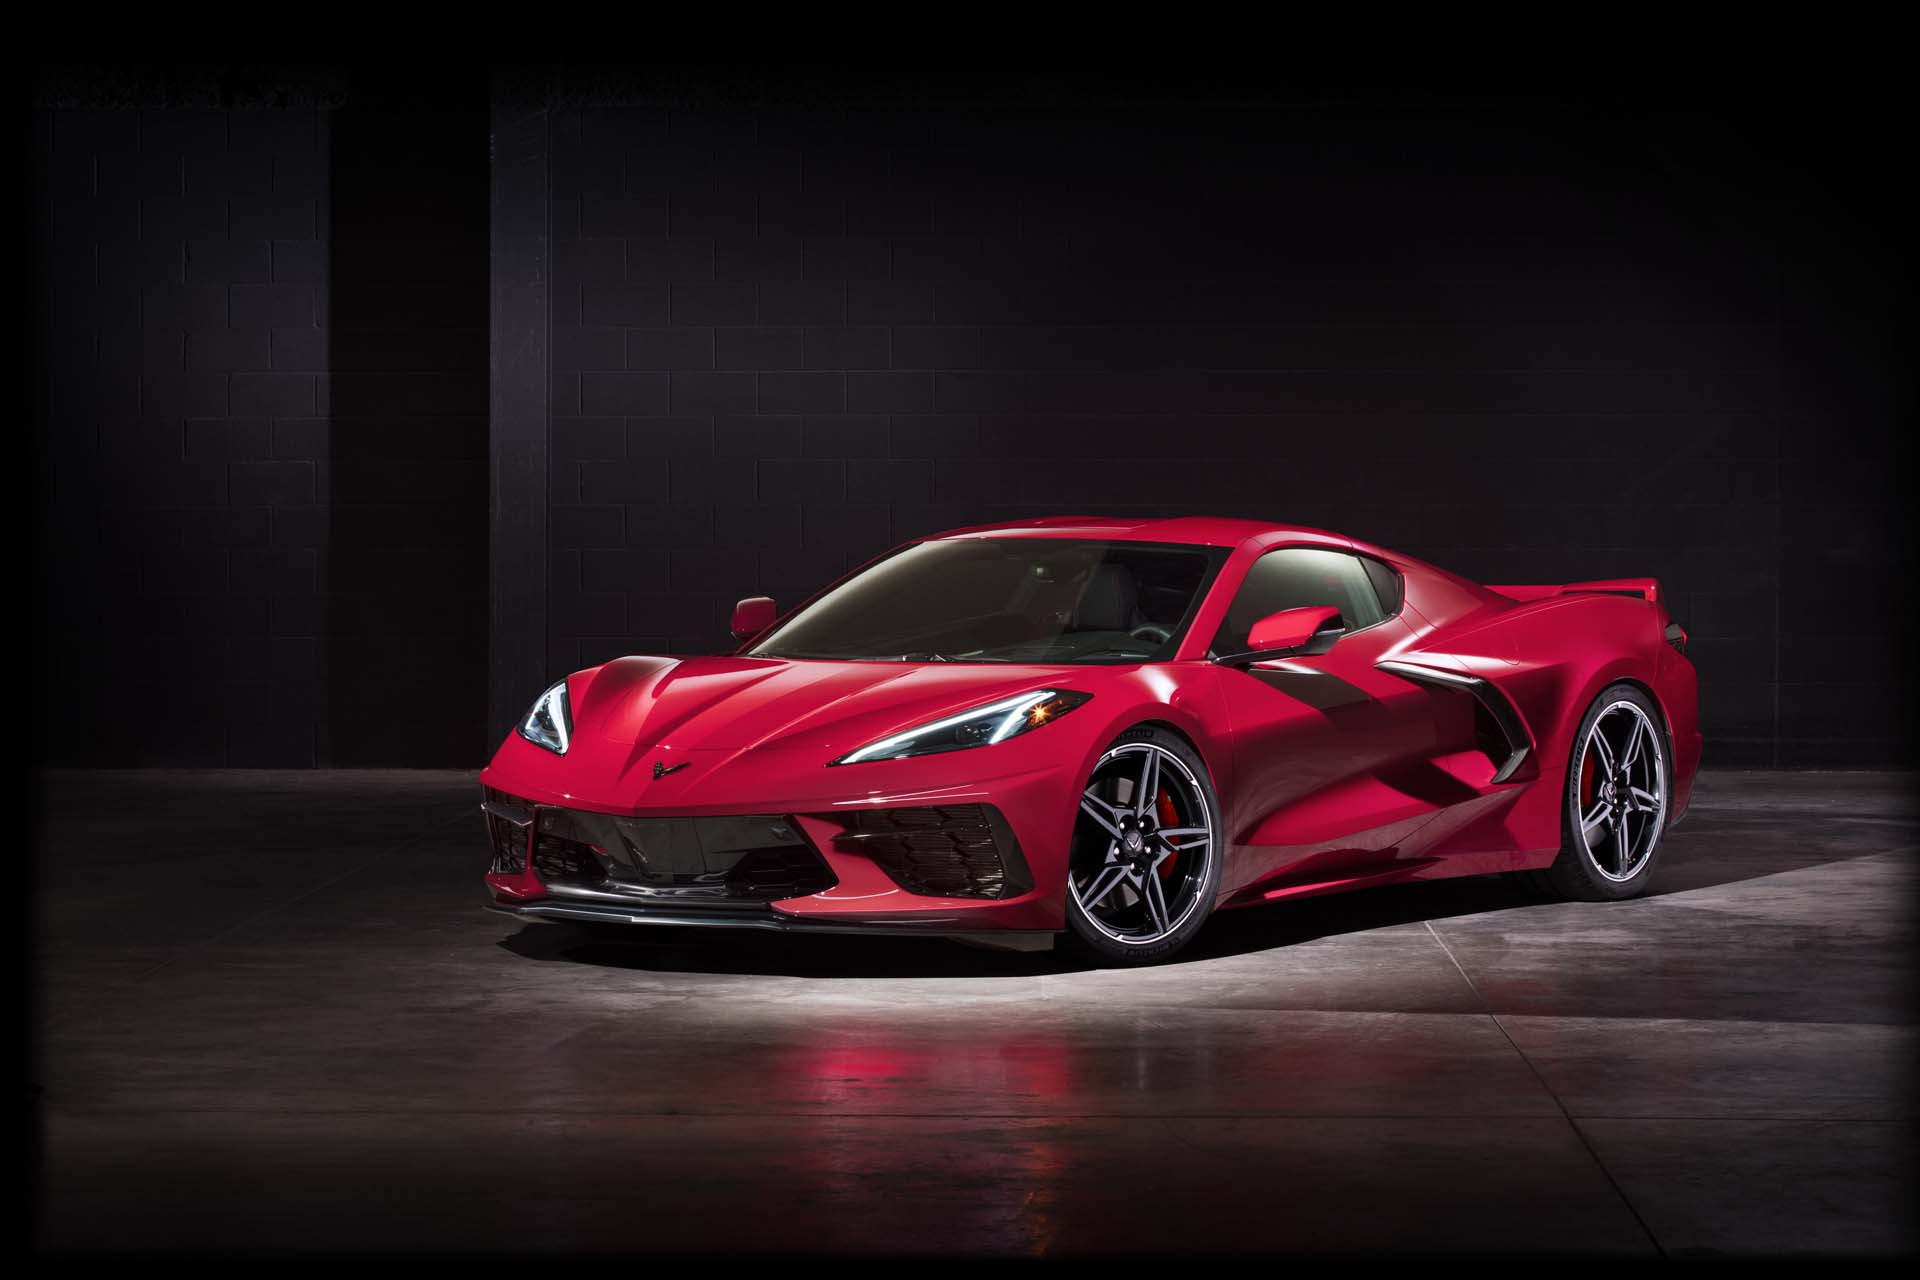 The price of the all-new 2020 Corvette officially revealed. How much is it?